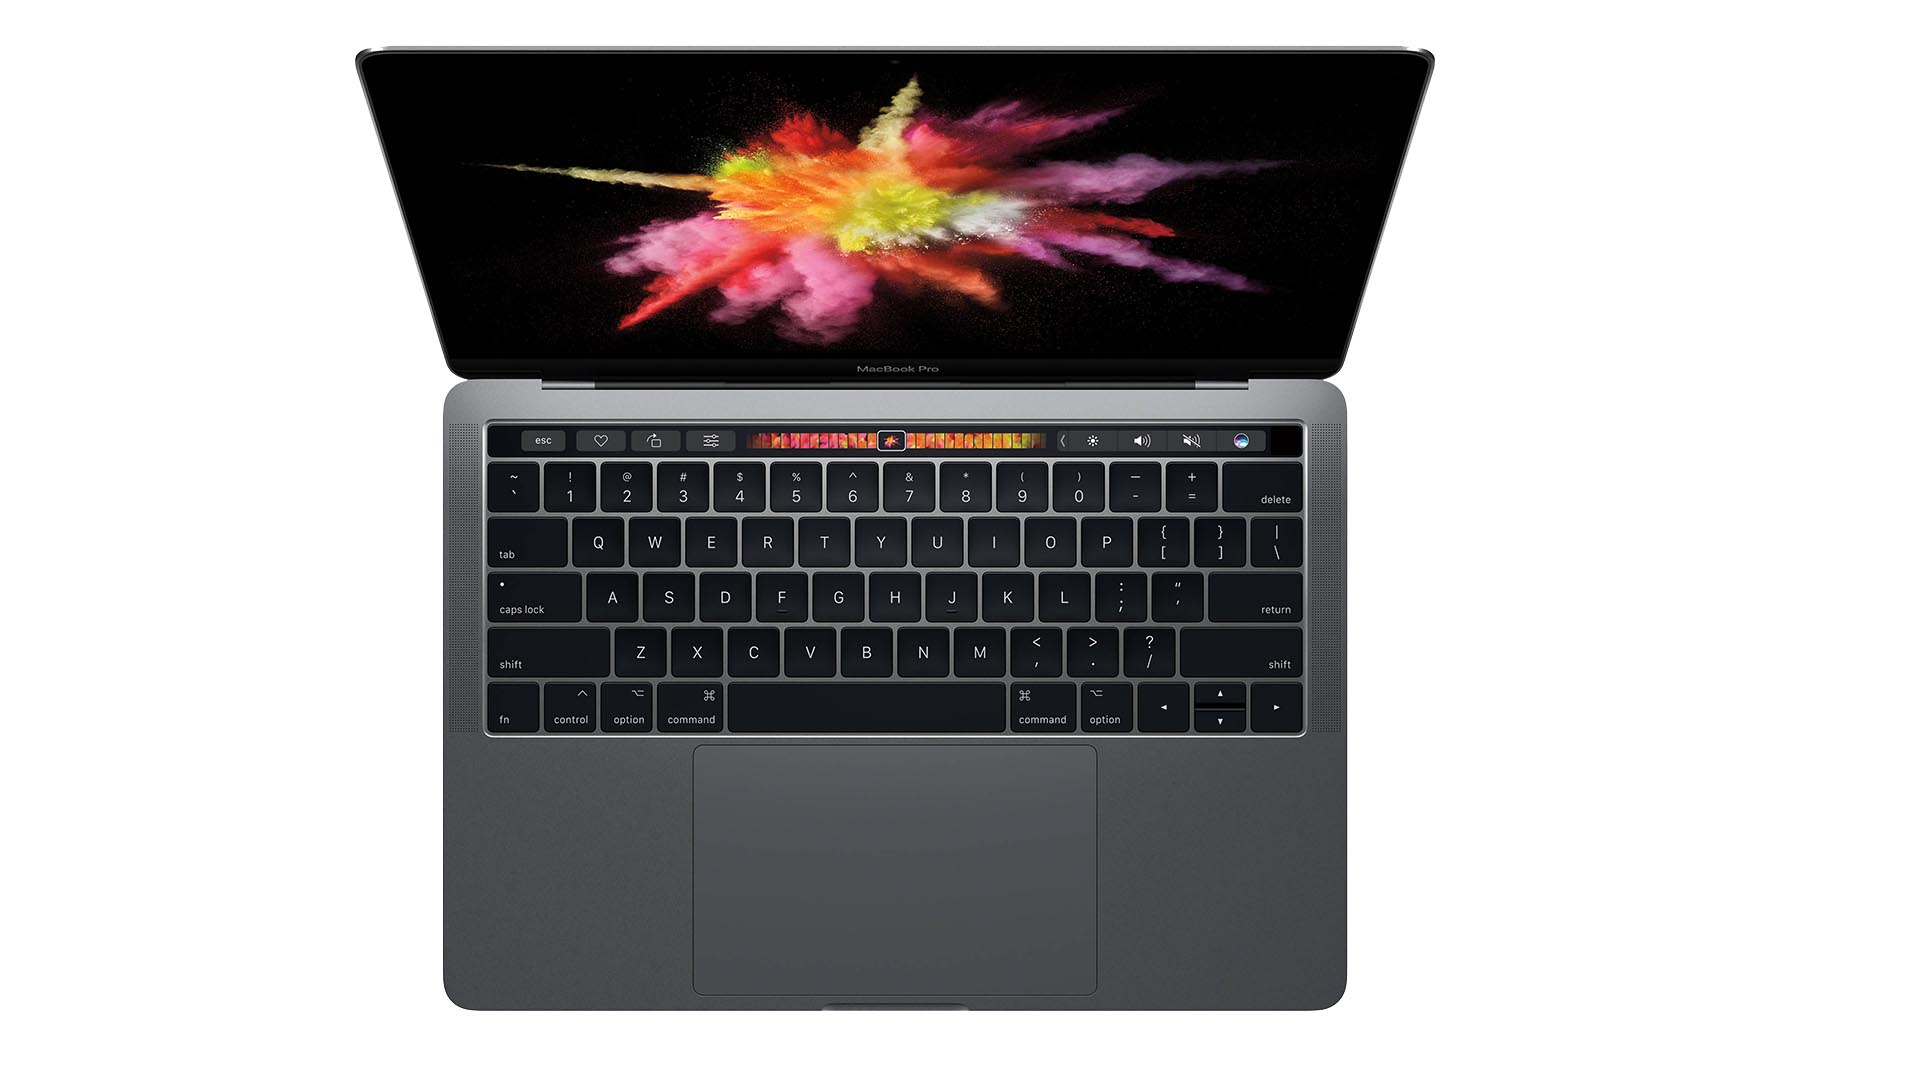 macbook pro tastiera virtuale oled